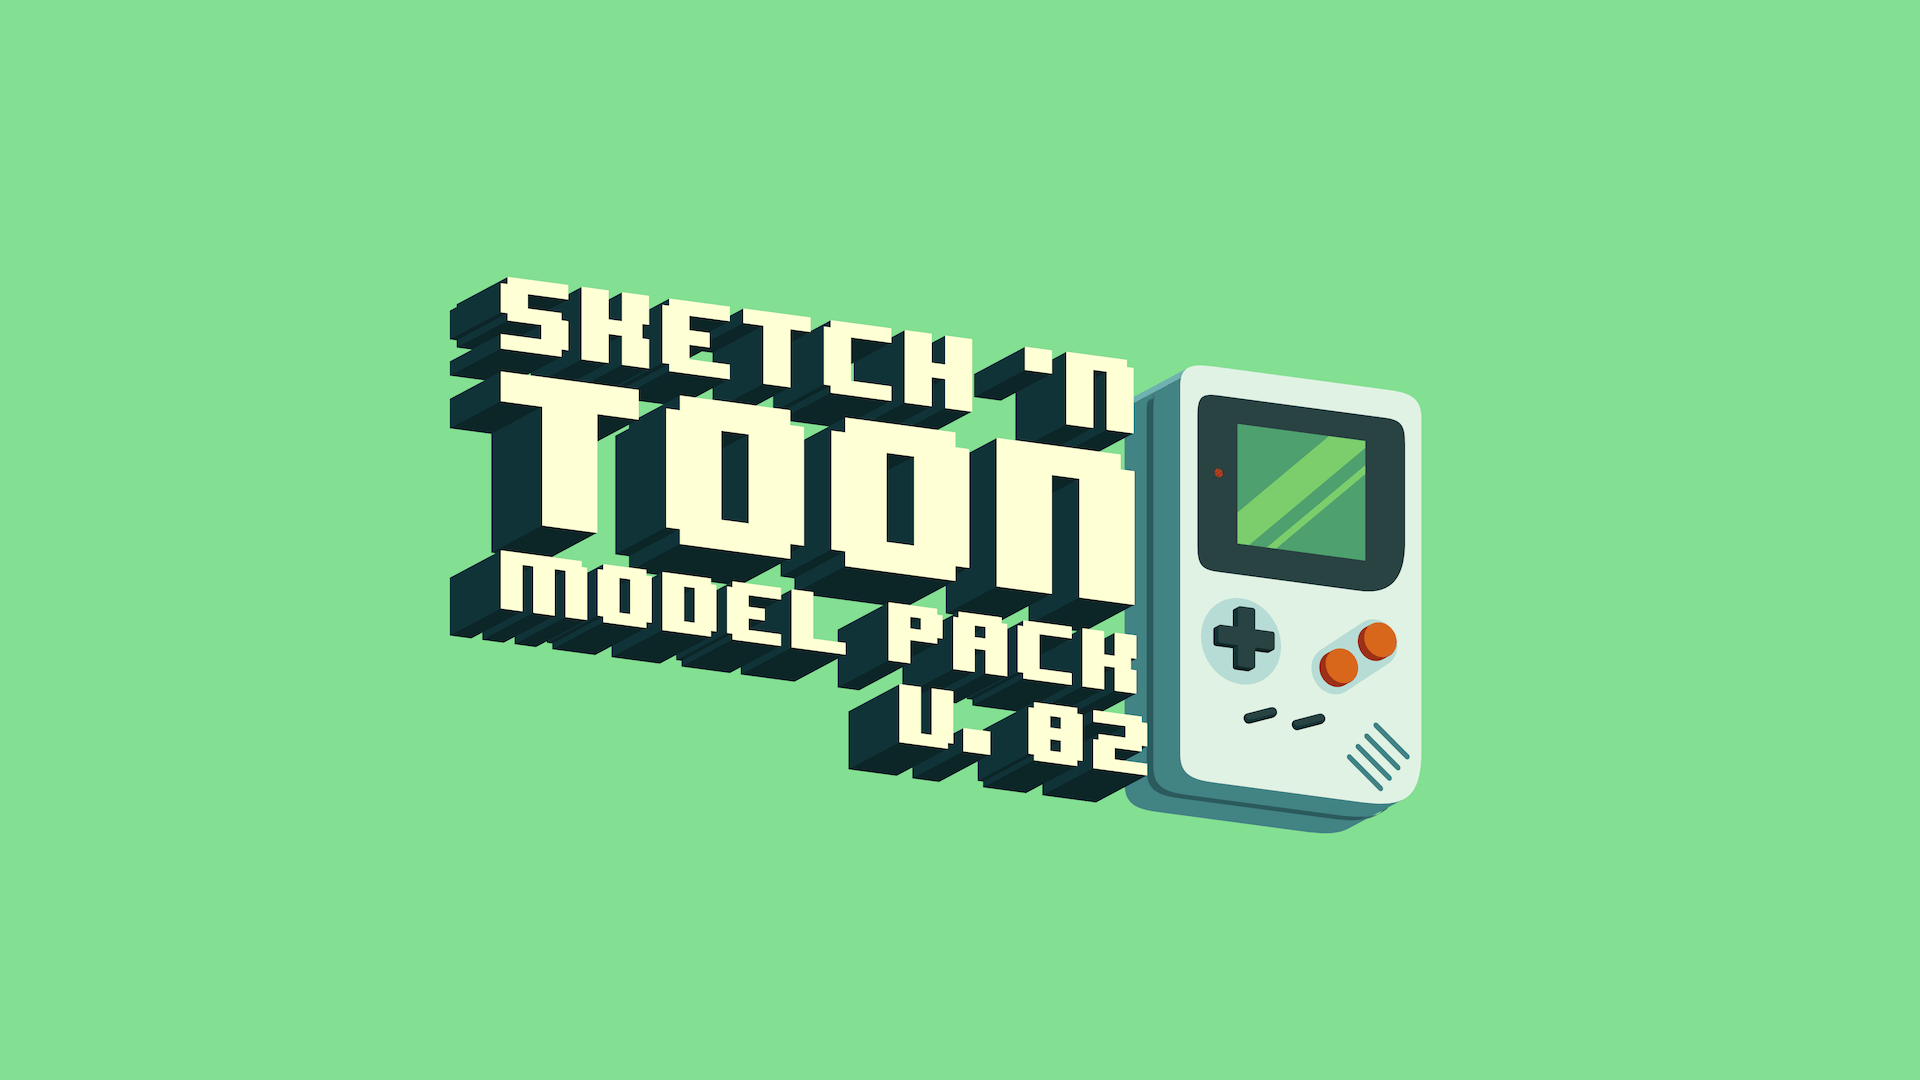 Sketch toon model pack v 02